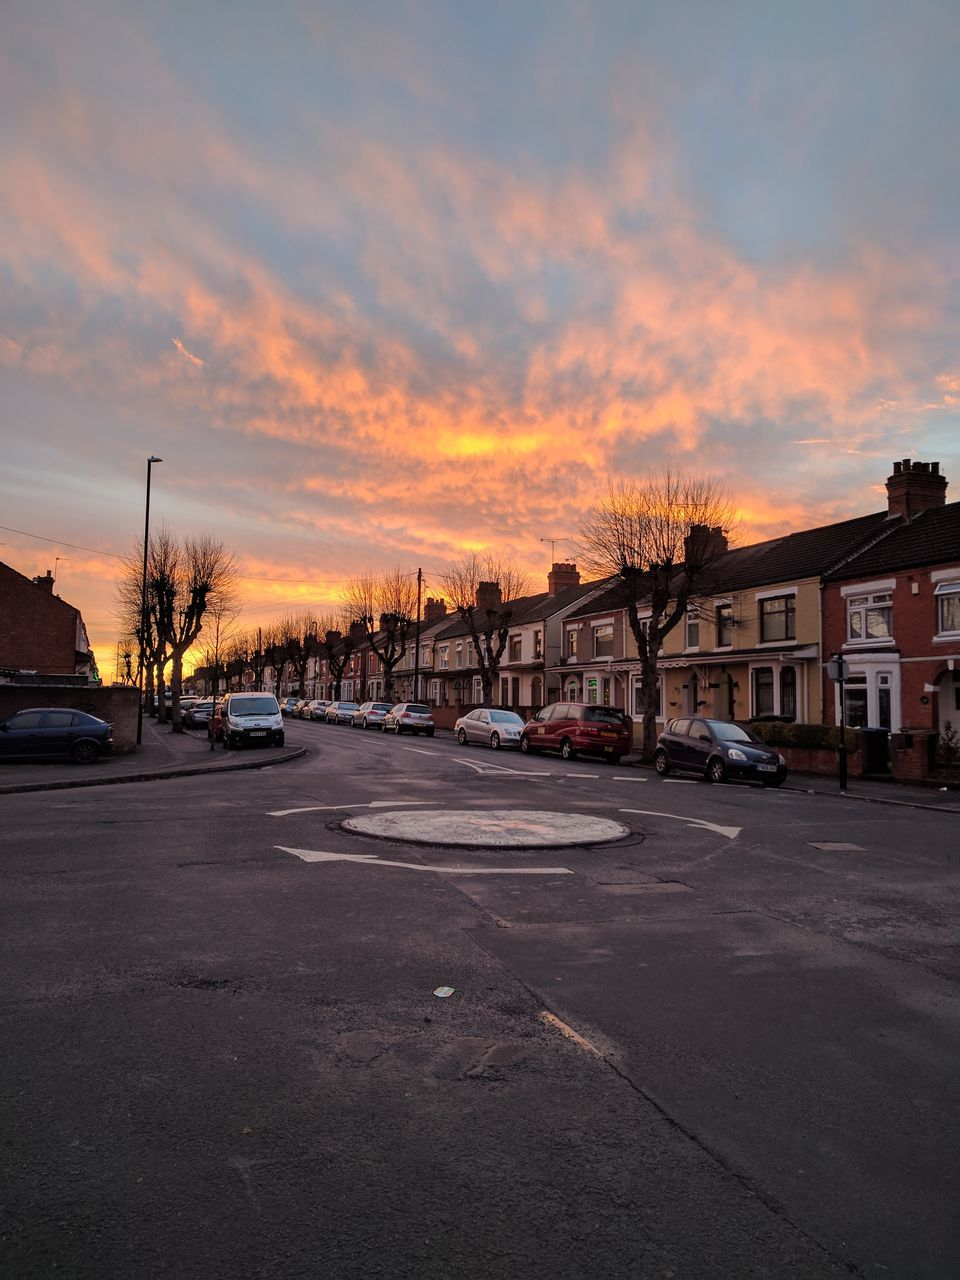 Road In City Against Sky At Sunset